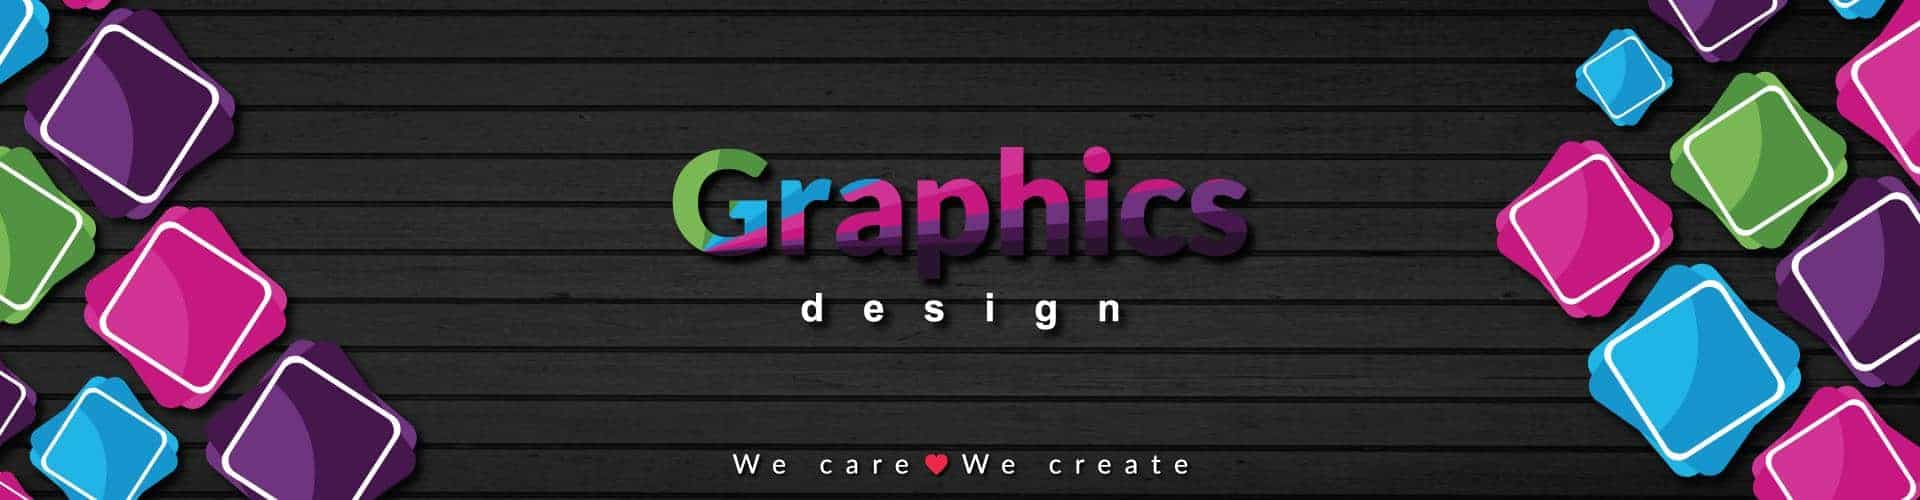 We create great lodo designs and business cards